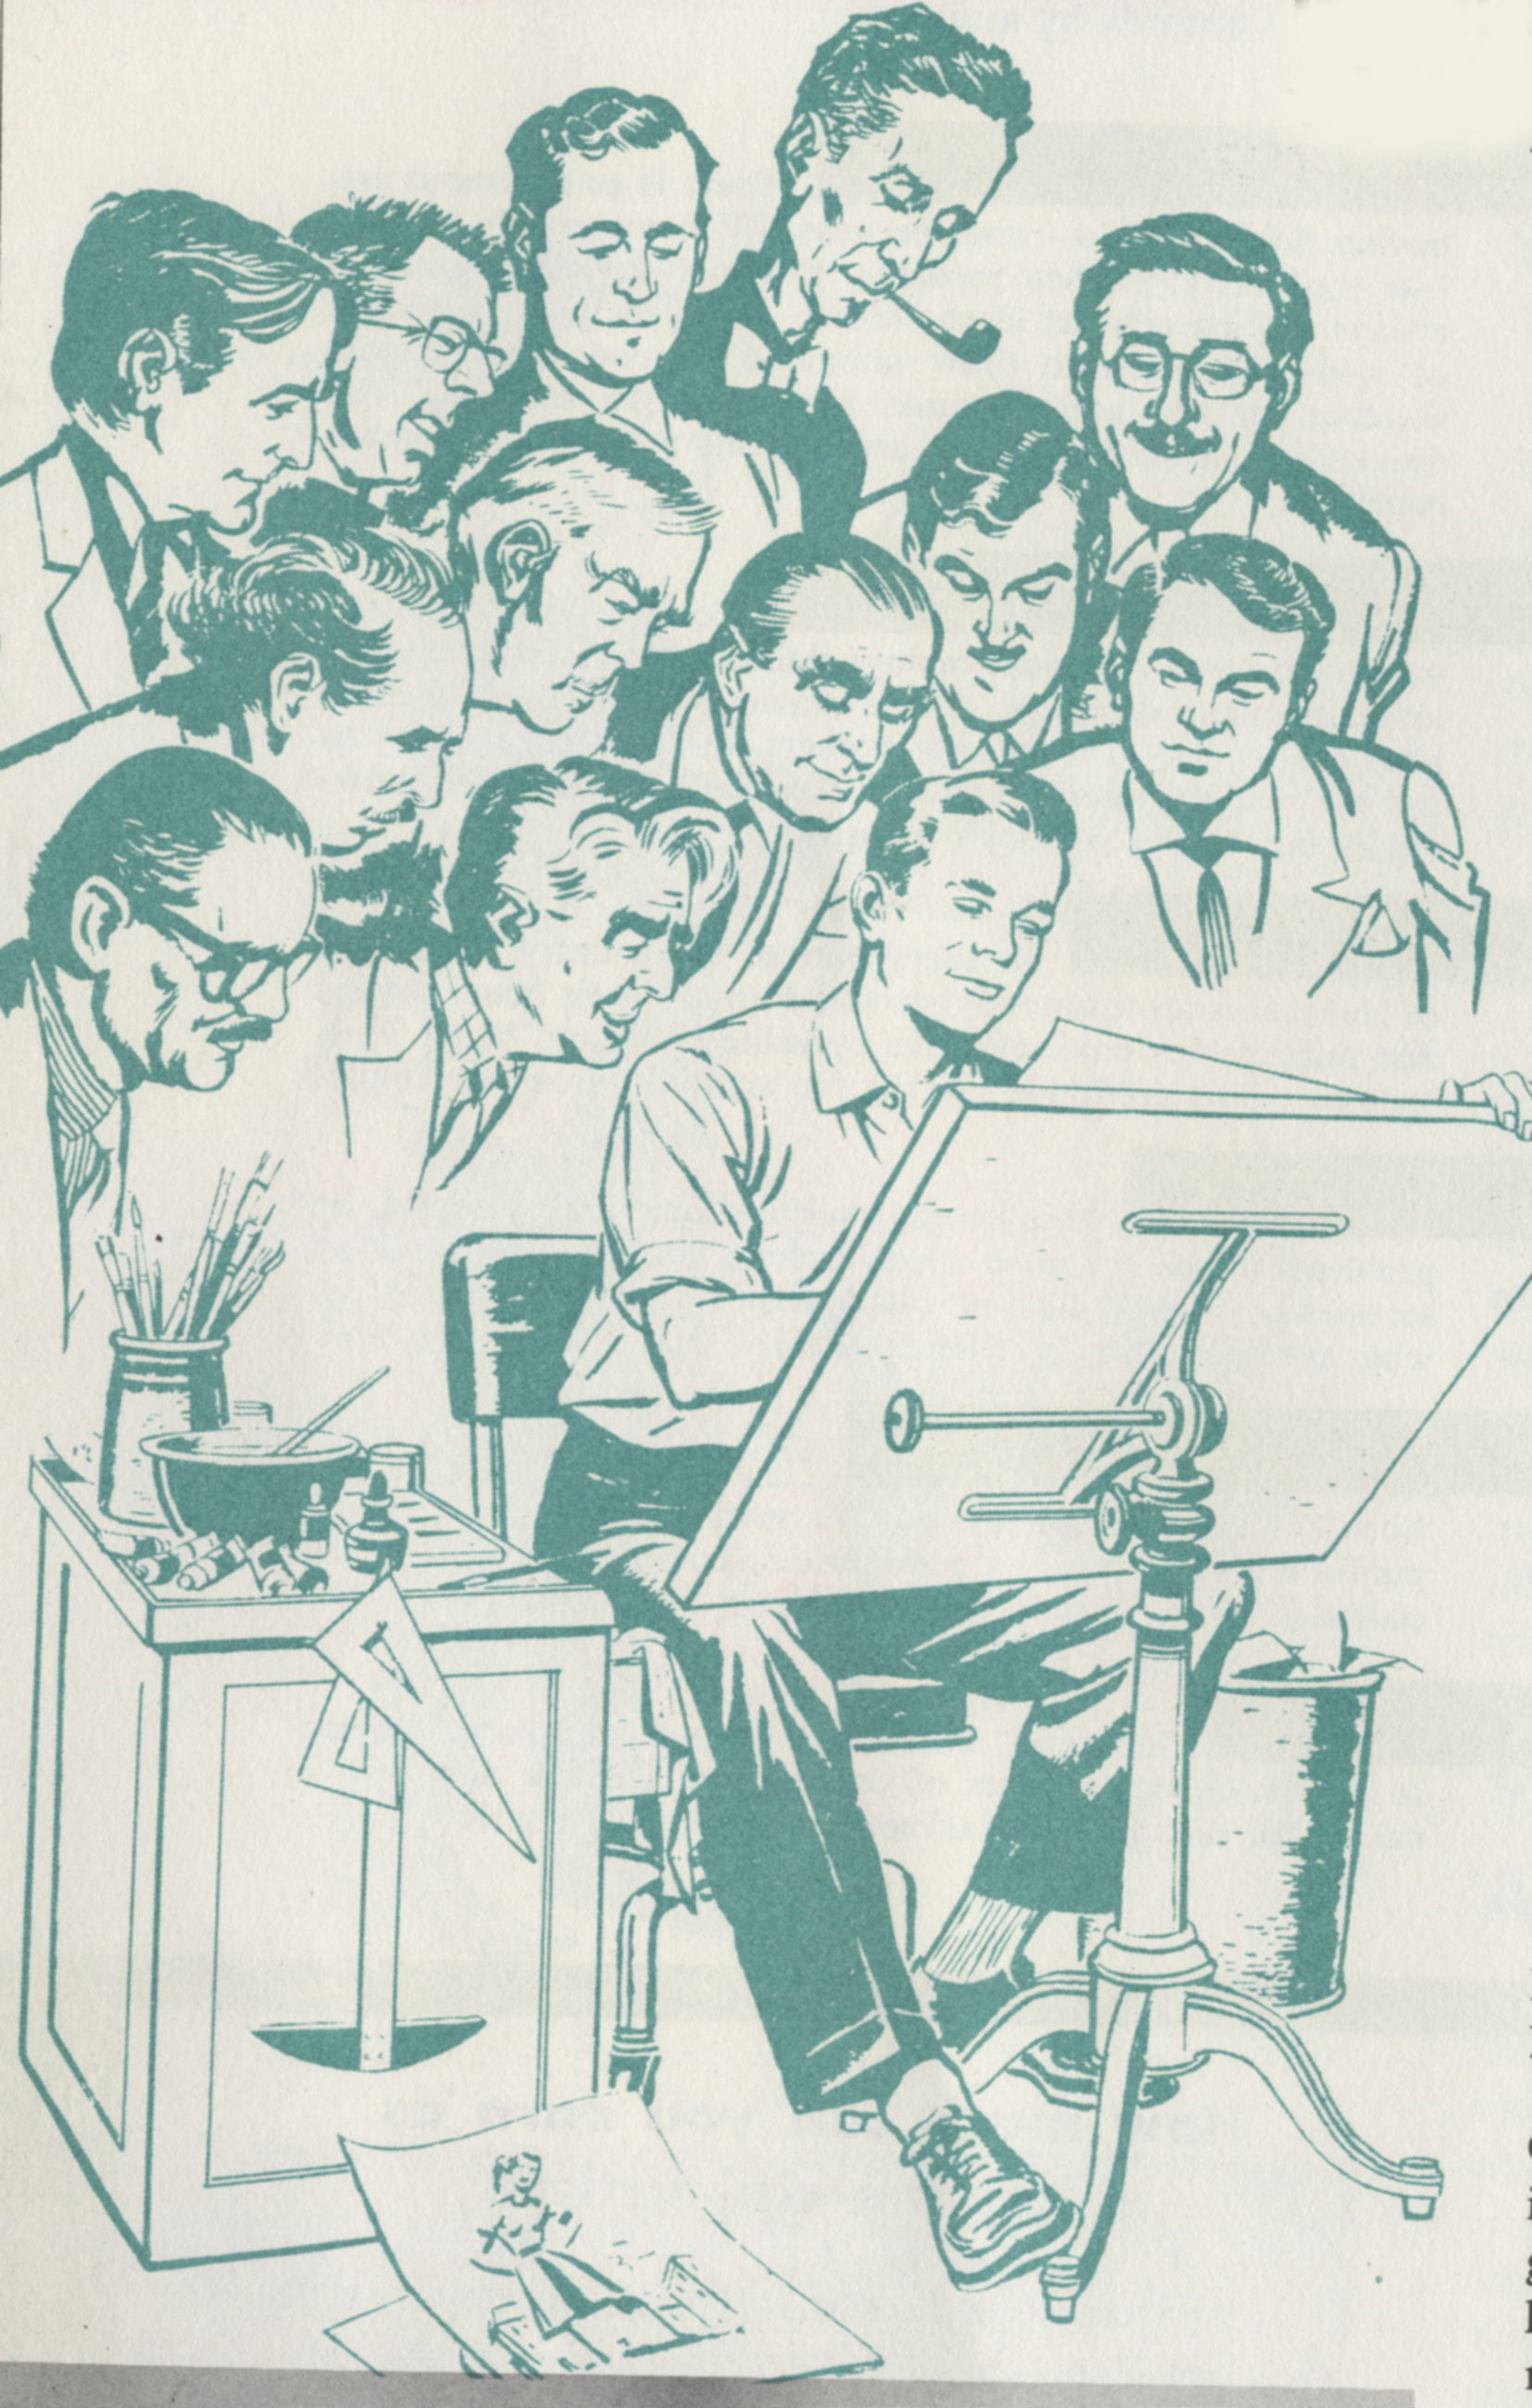 Illustrator uncredited,  Student working under the supervision of famous illustrators.  Detail, Famous Artists School promotional materials, circa 1960. The guy with the thick eyebrows immediately behind the student is Albert Dorne, FAS founder. Norman Rockwell has the pipe; next to Rockwell with the moustacheand glasses is Al Parker.